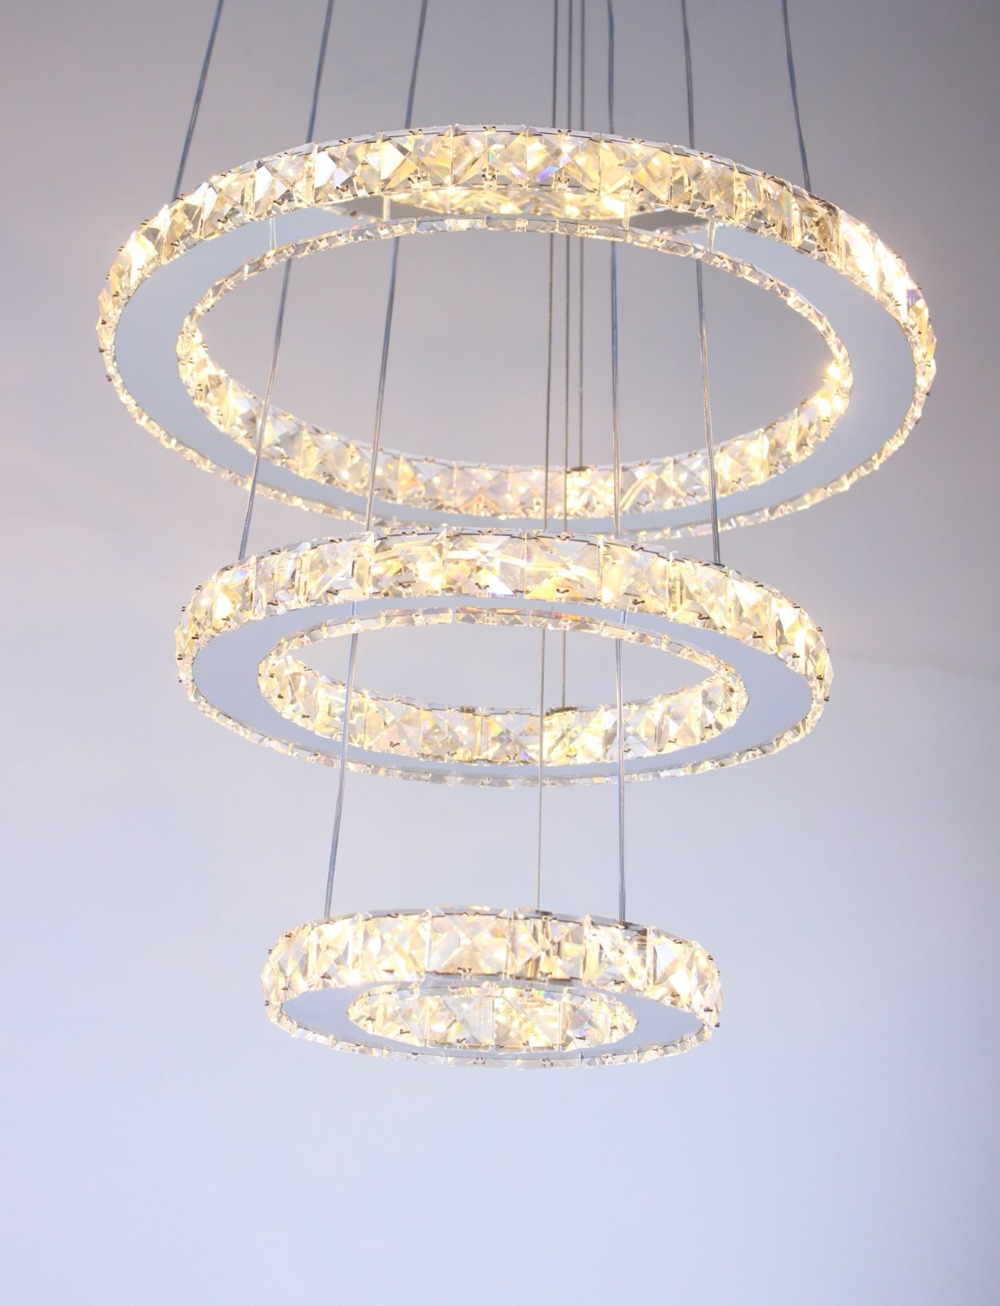 Us 88 38 48 Off Mirror Stainless Steel Crystal Diamond Lighting Fixtures 3 Rings Led Pendant Lights Cristal Dinning Decorative Hanging Lamp In